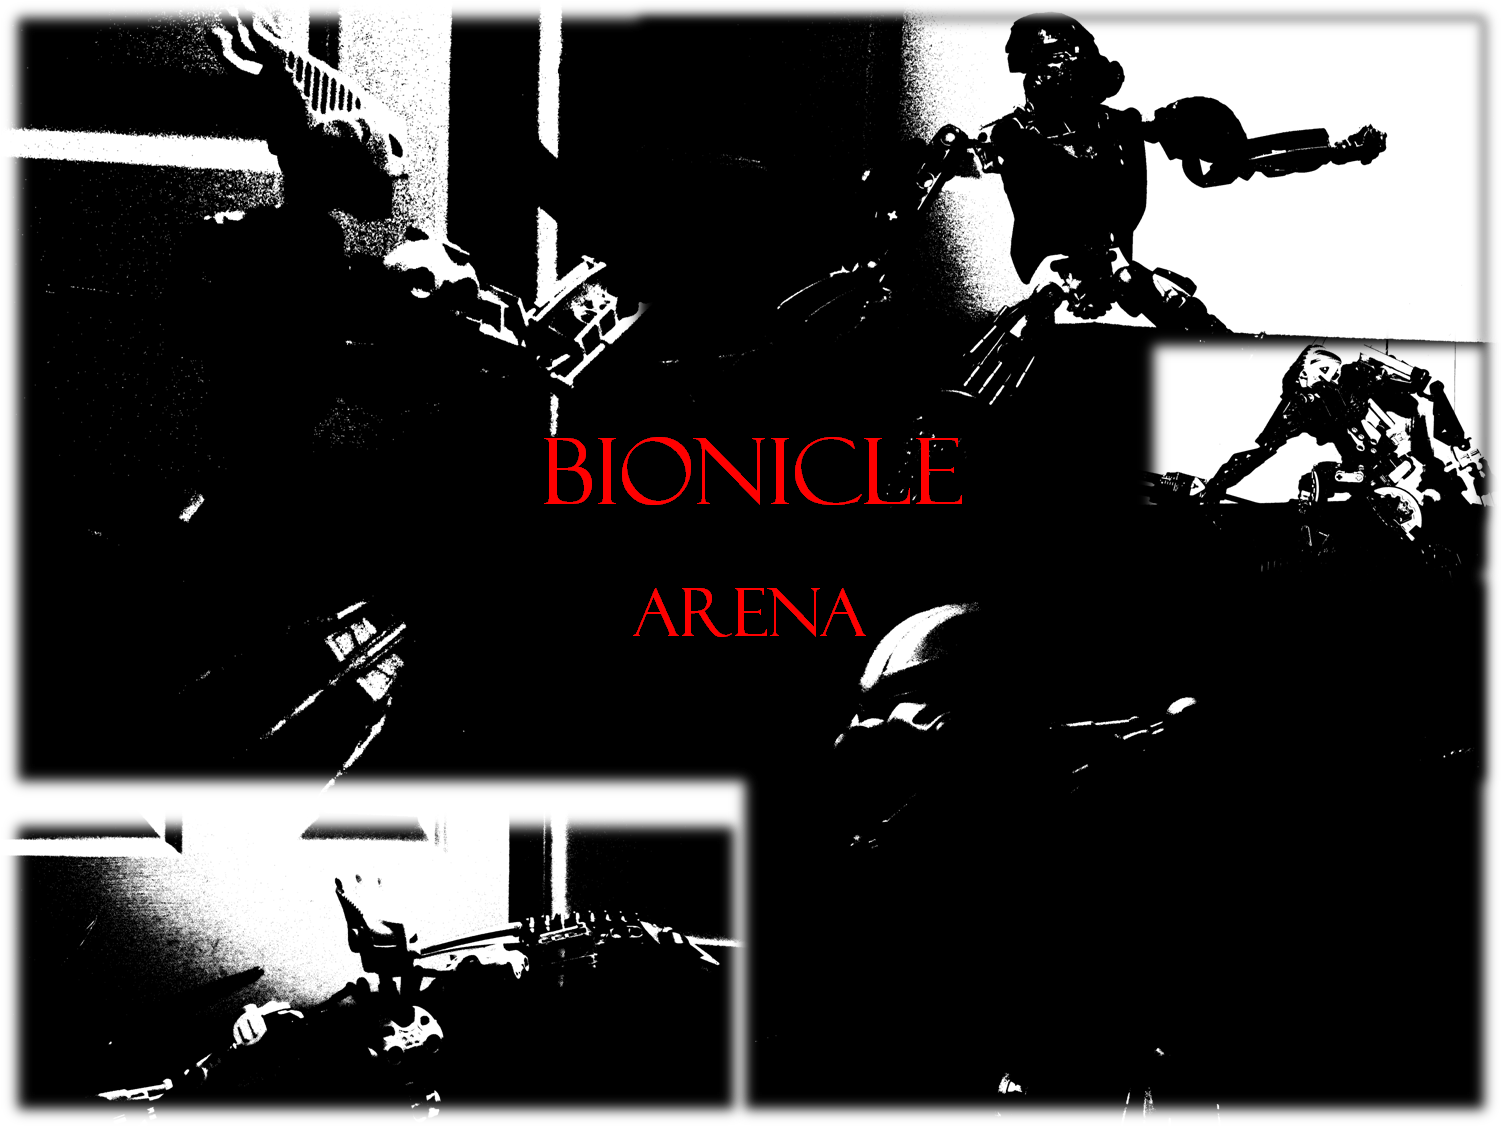 bionicle_arena_pic.png